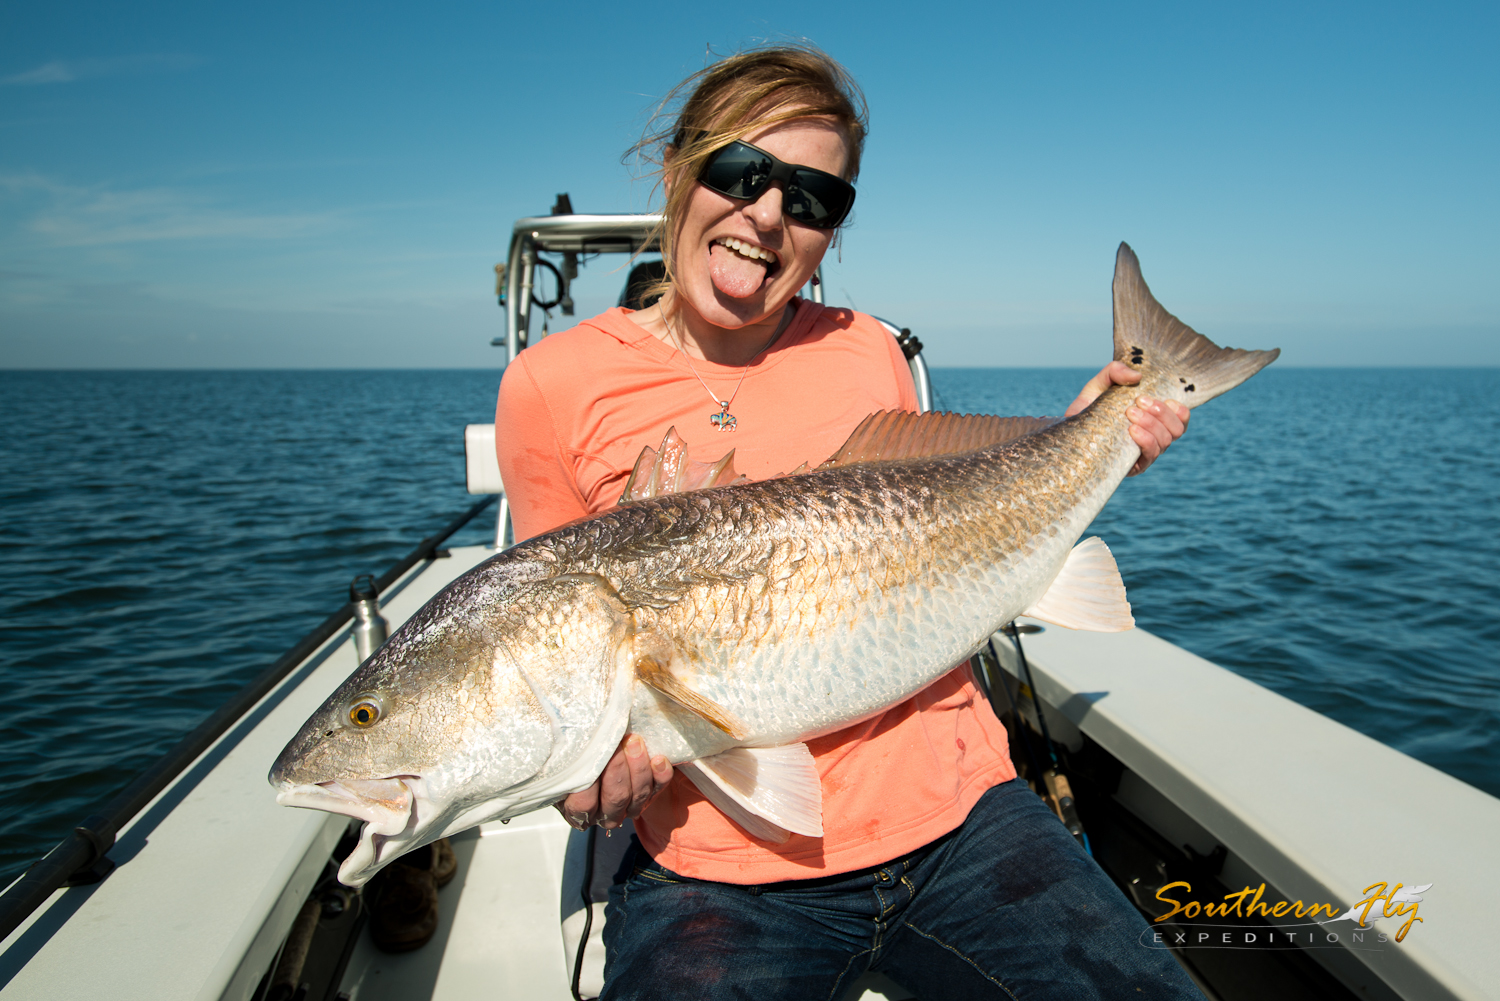 Woodland louisiana fly fishing with Southern Fly Expeditions and Captain Brandon Keck